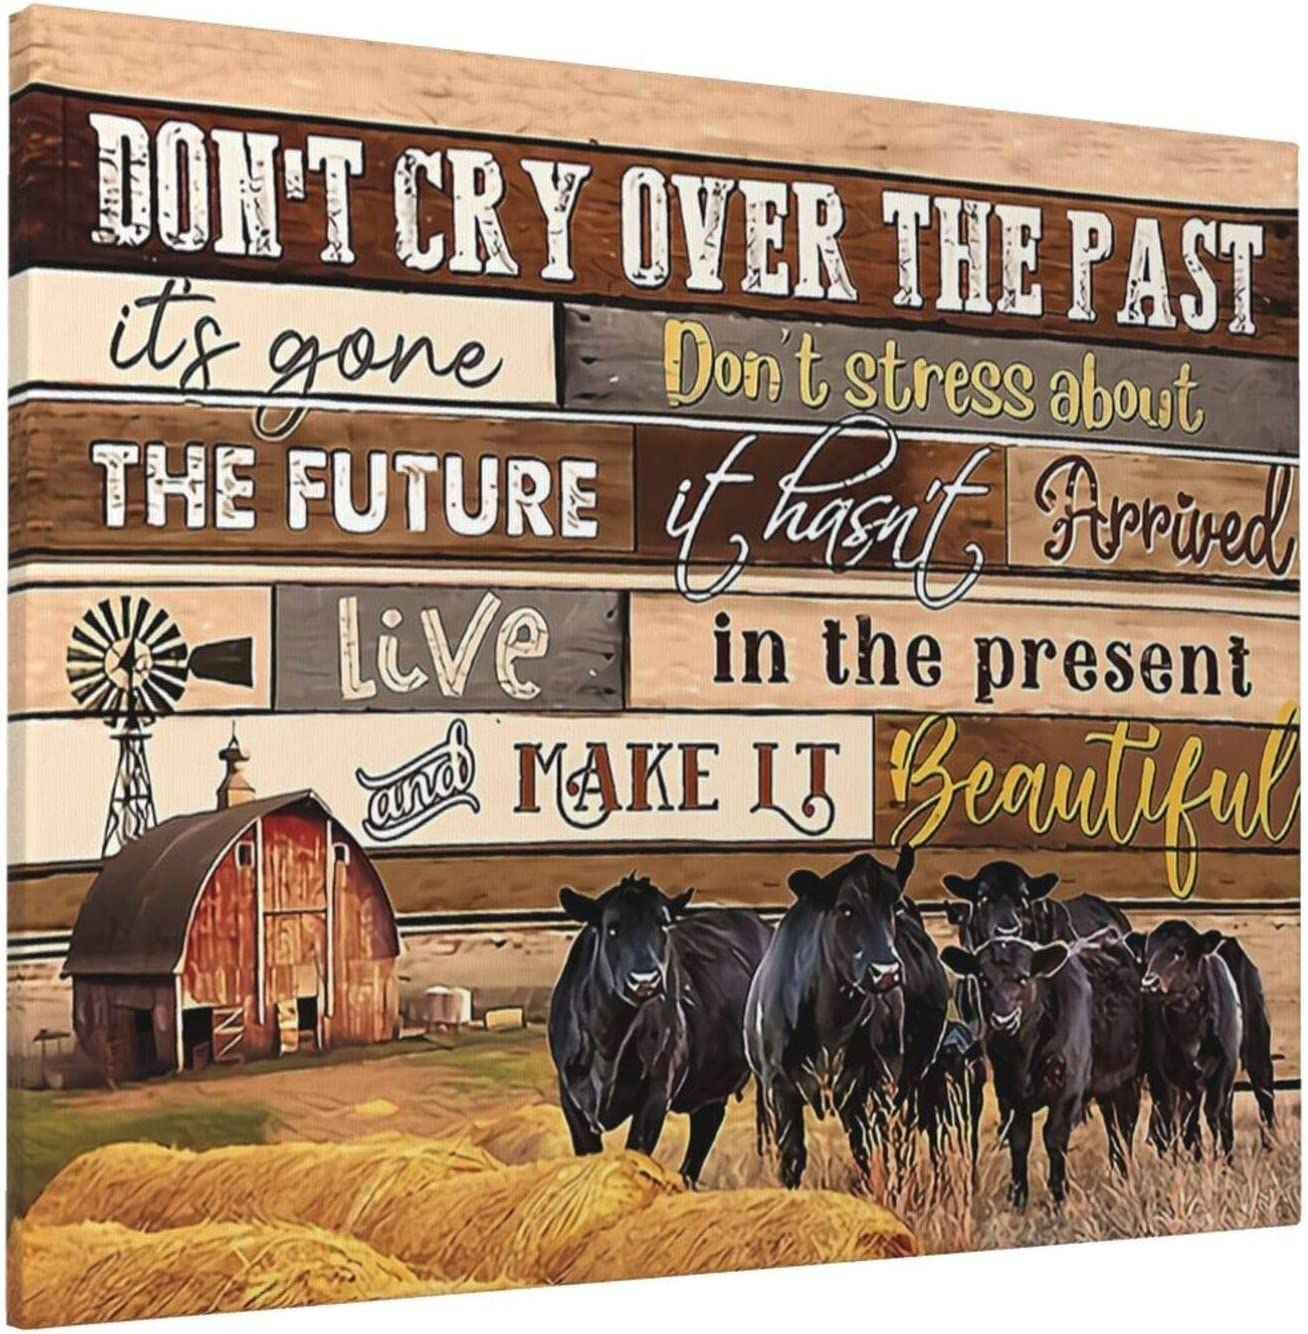 Cute Cow Canvas Wall Art Funny Rustic Farmhouse Cow Kitchen Decor Country Cattle Quotes Pictures Modern Giclee Print Painting Home Decoration For Dining Room Living Room Bedroom Framed Ready To Hang 16x20inch